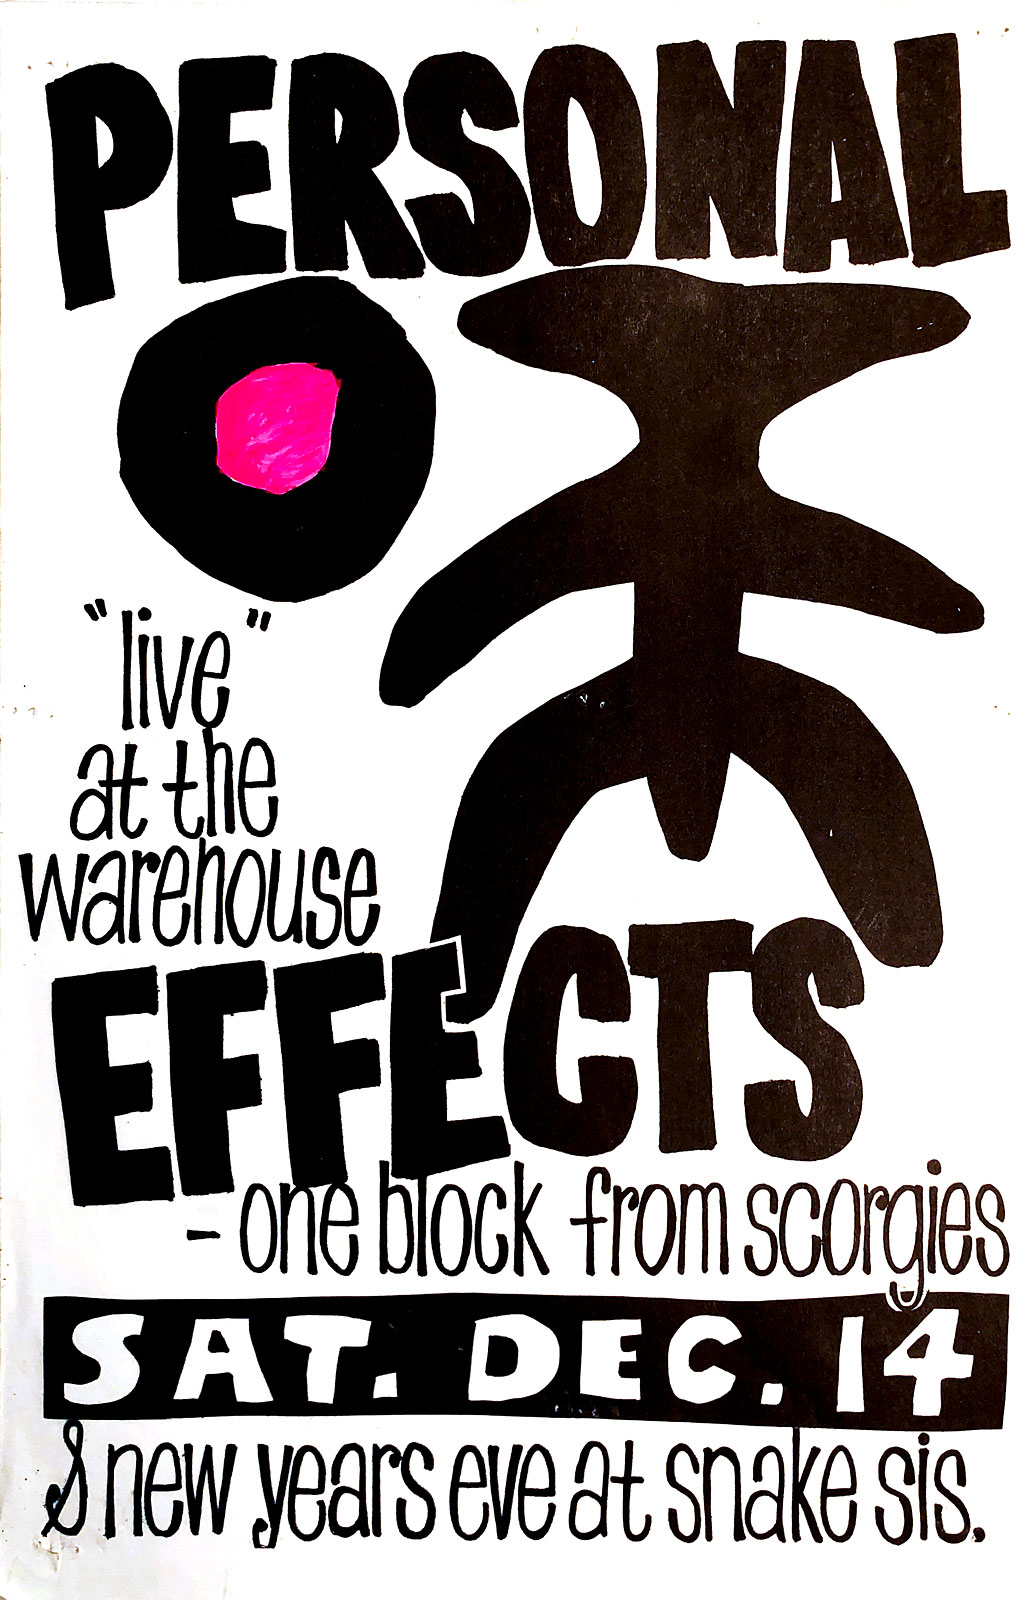 Poster for two Personal Effects gigs. The Warehouse in Rochester, New York on 12.14.1985 and Snakesister's Cafe on 12.31.986.